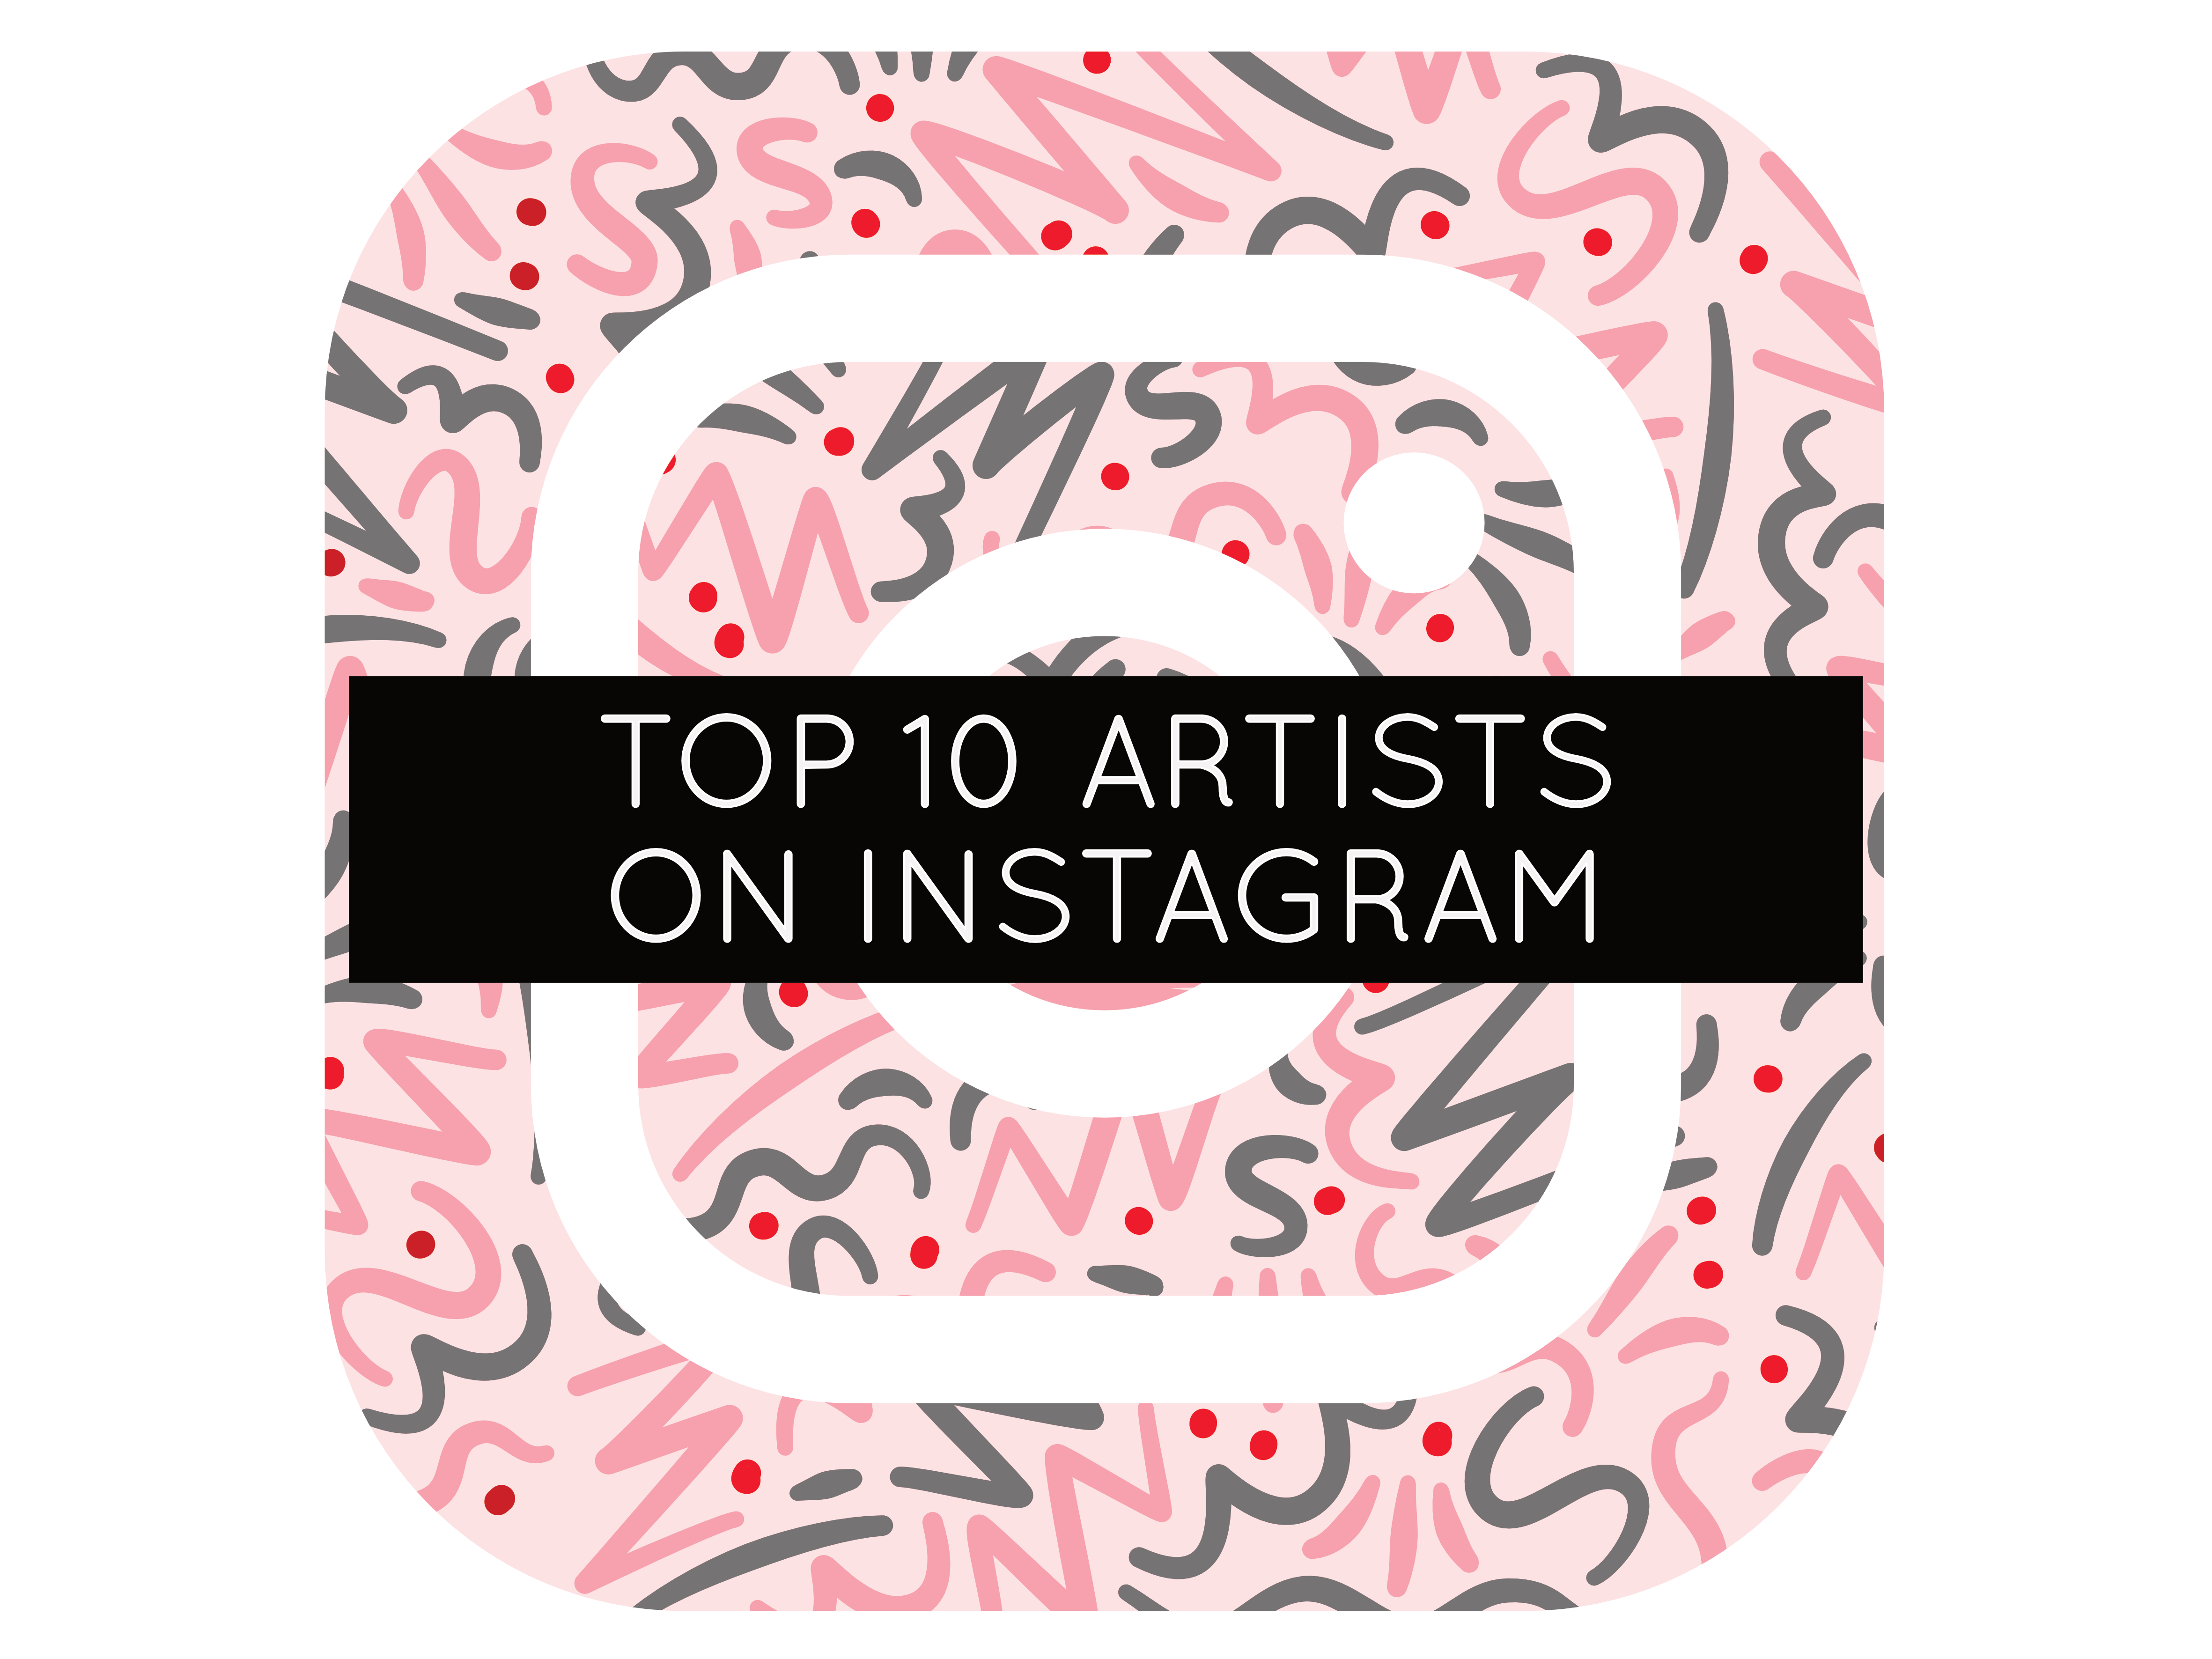 favourite artists on instagram